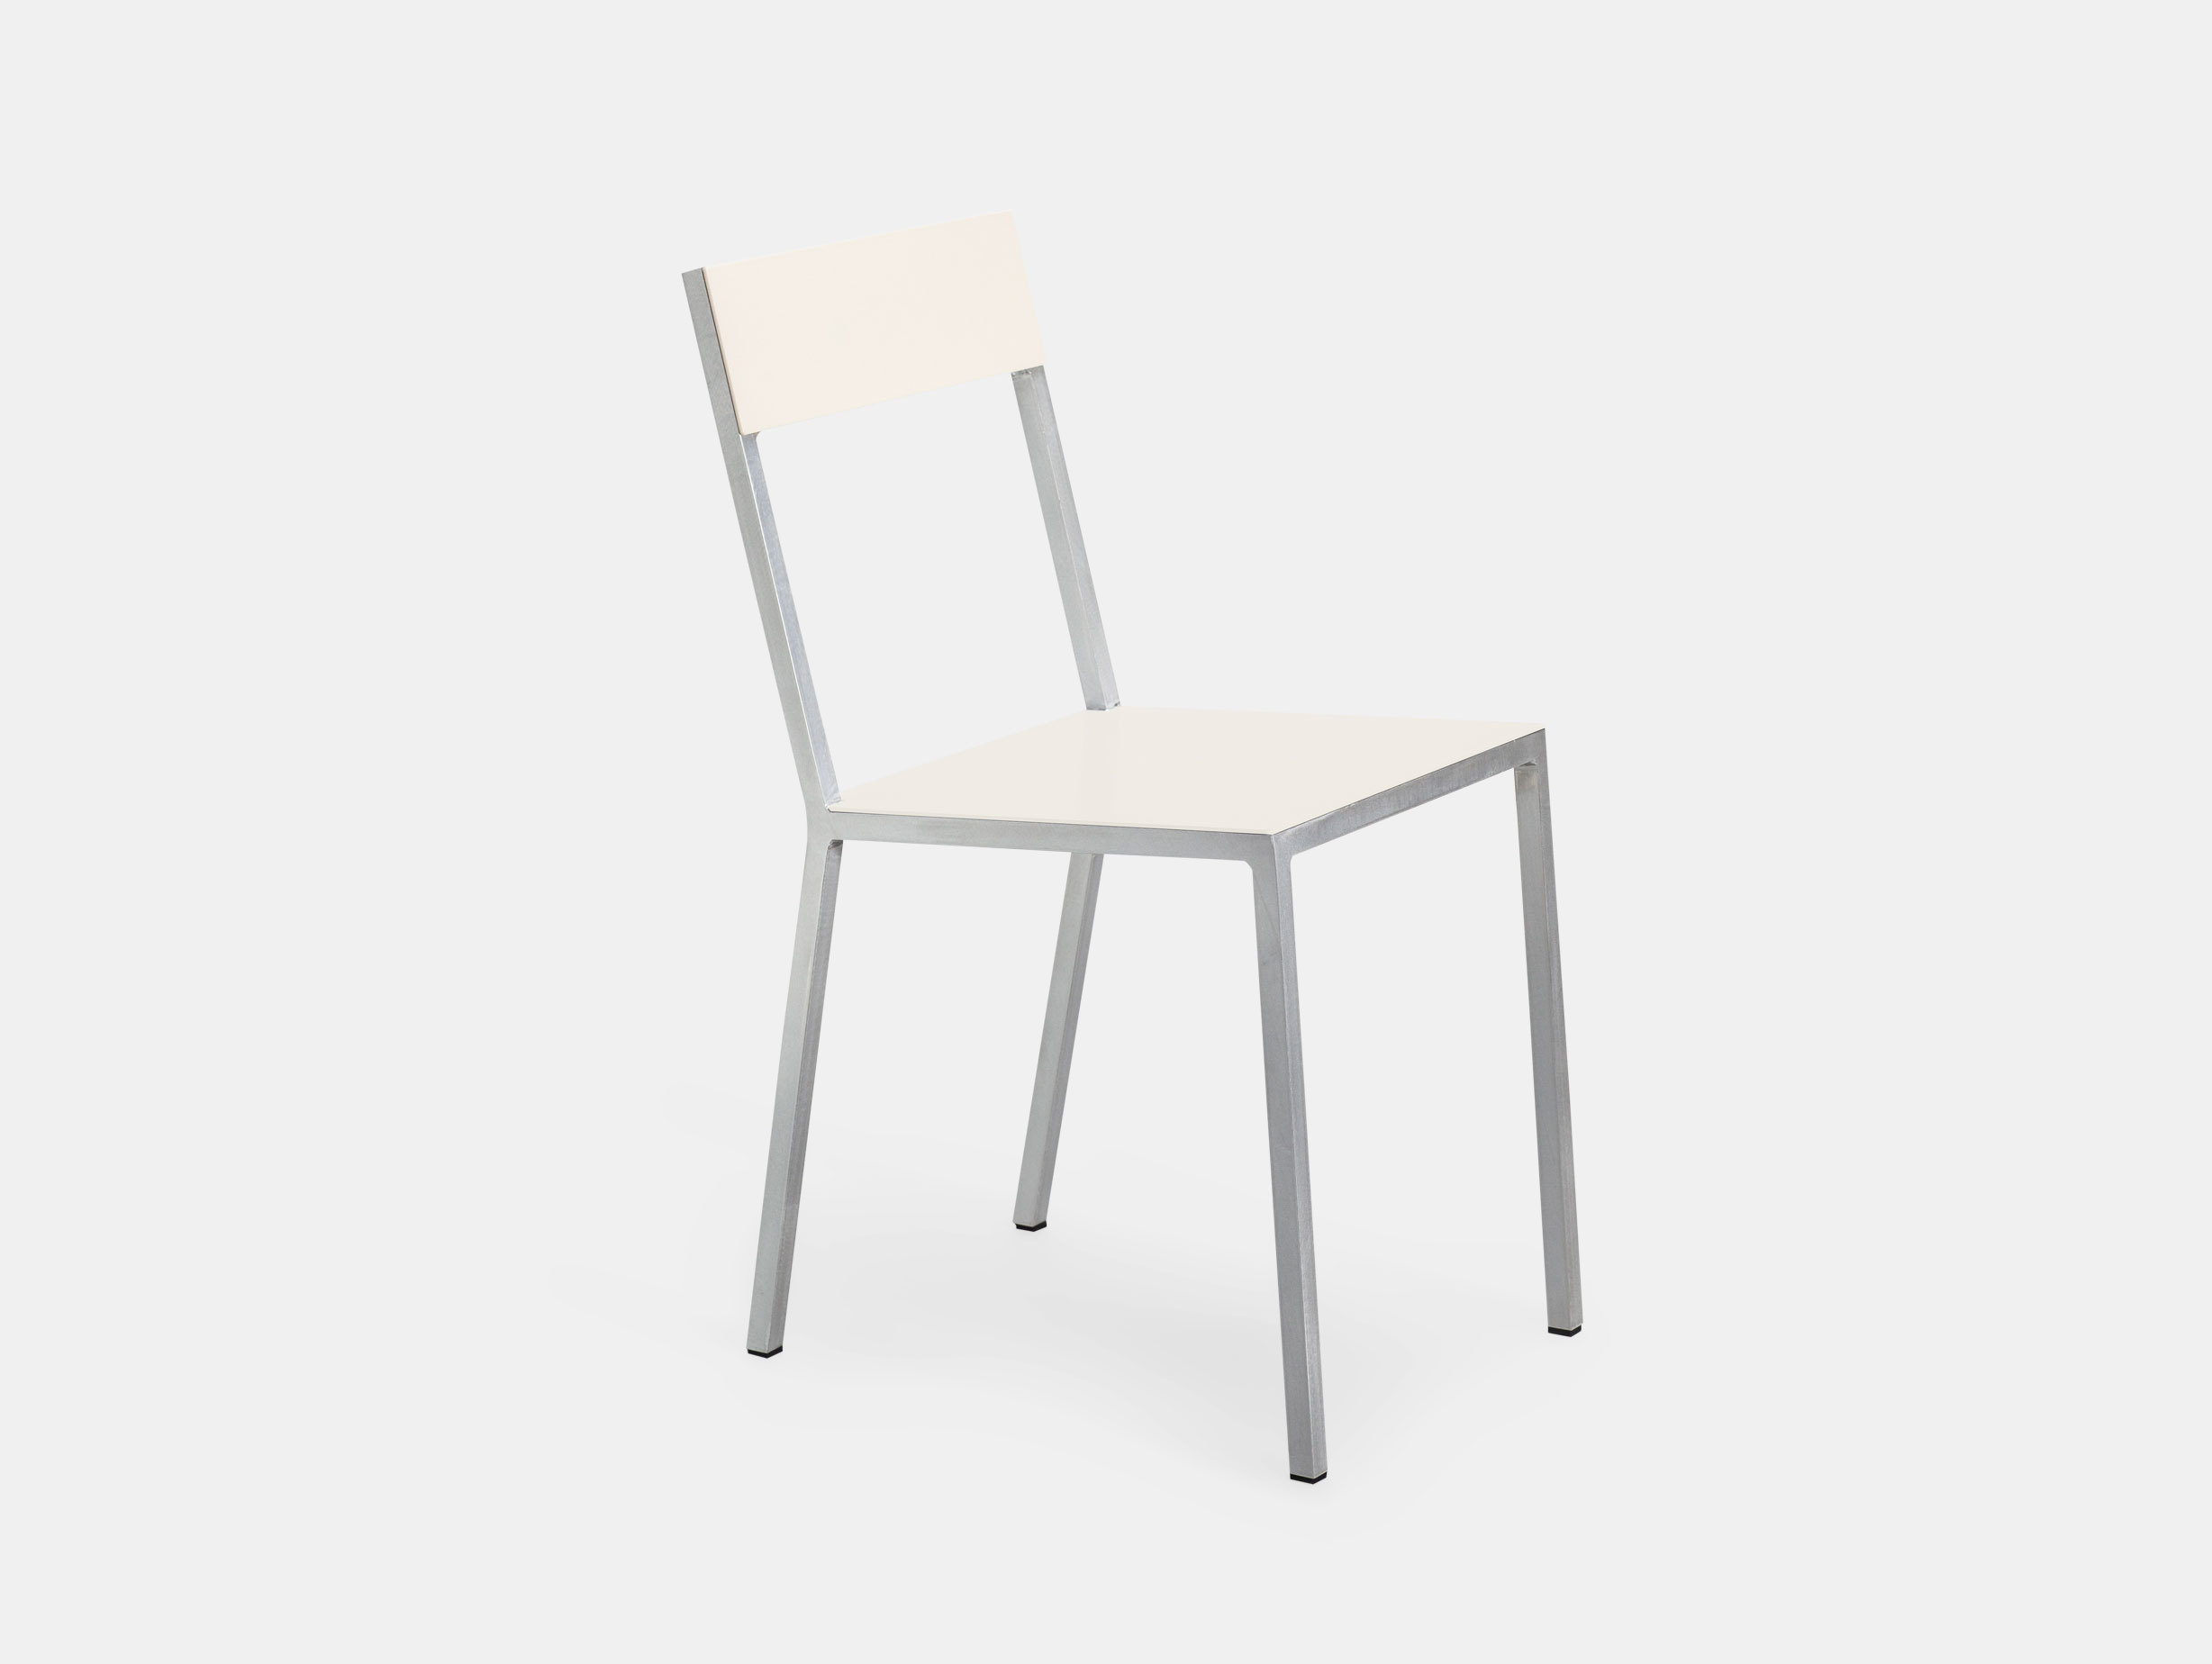 Alu Chair image 16